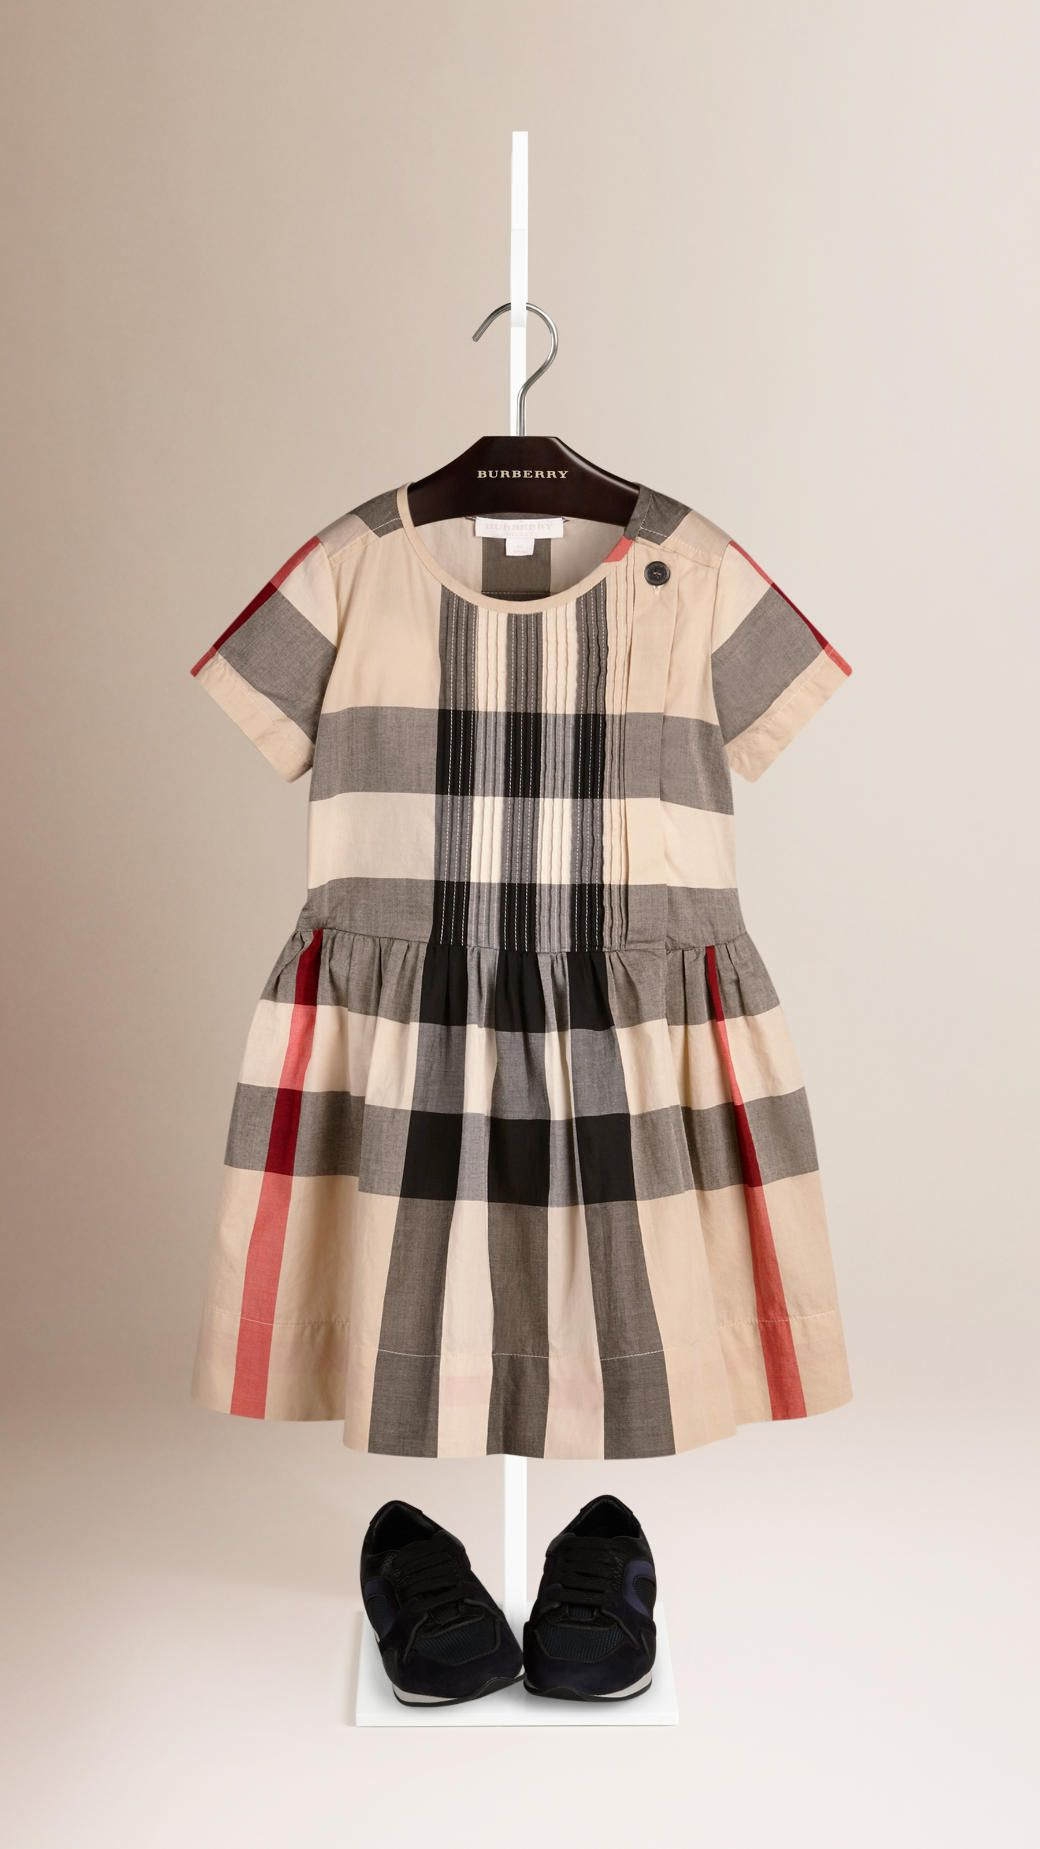 Pleat Detail Check Cotton Dress New Classic Check   Burberry   00 ... 2aa35c997fa